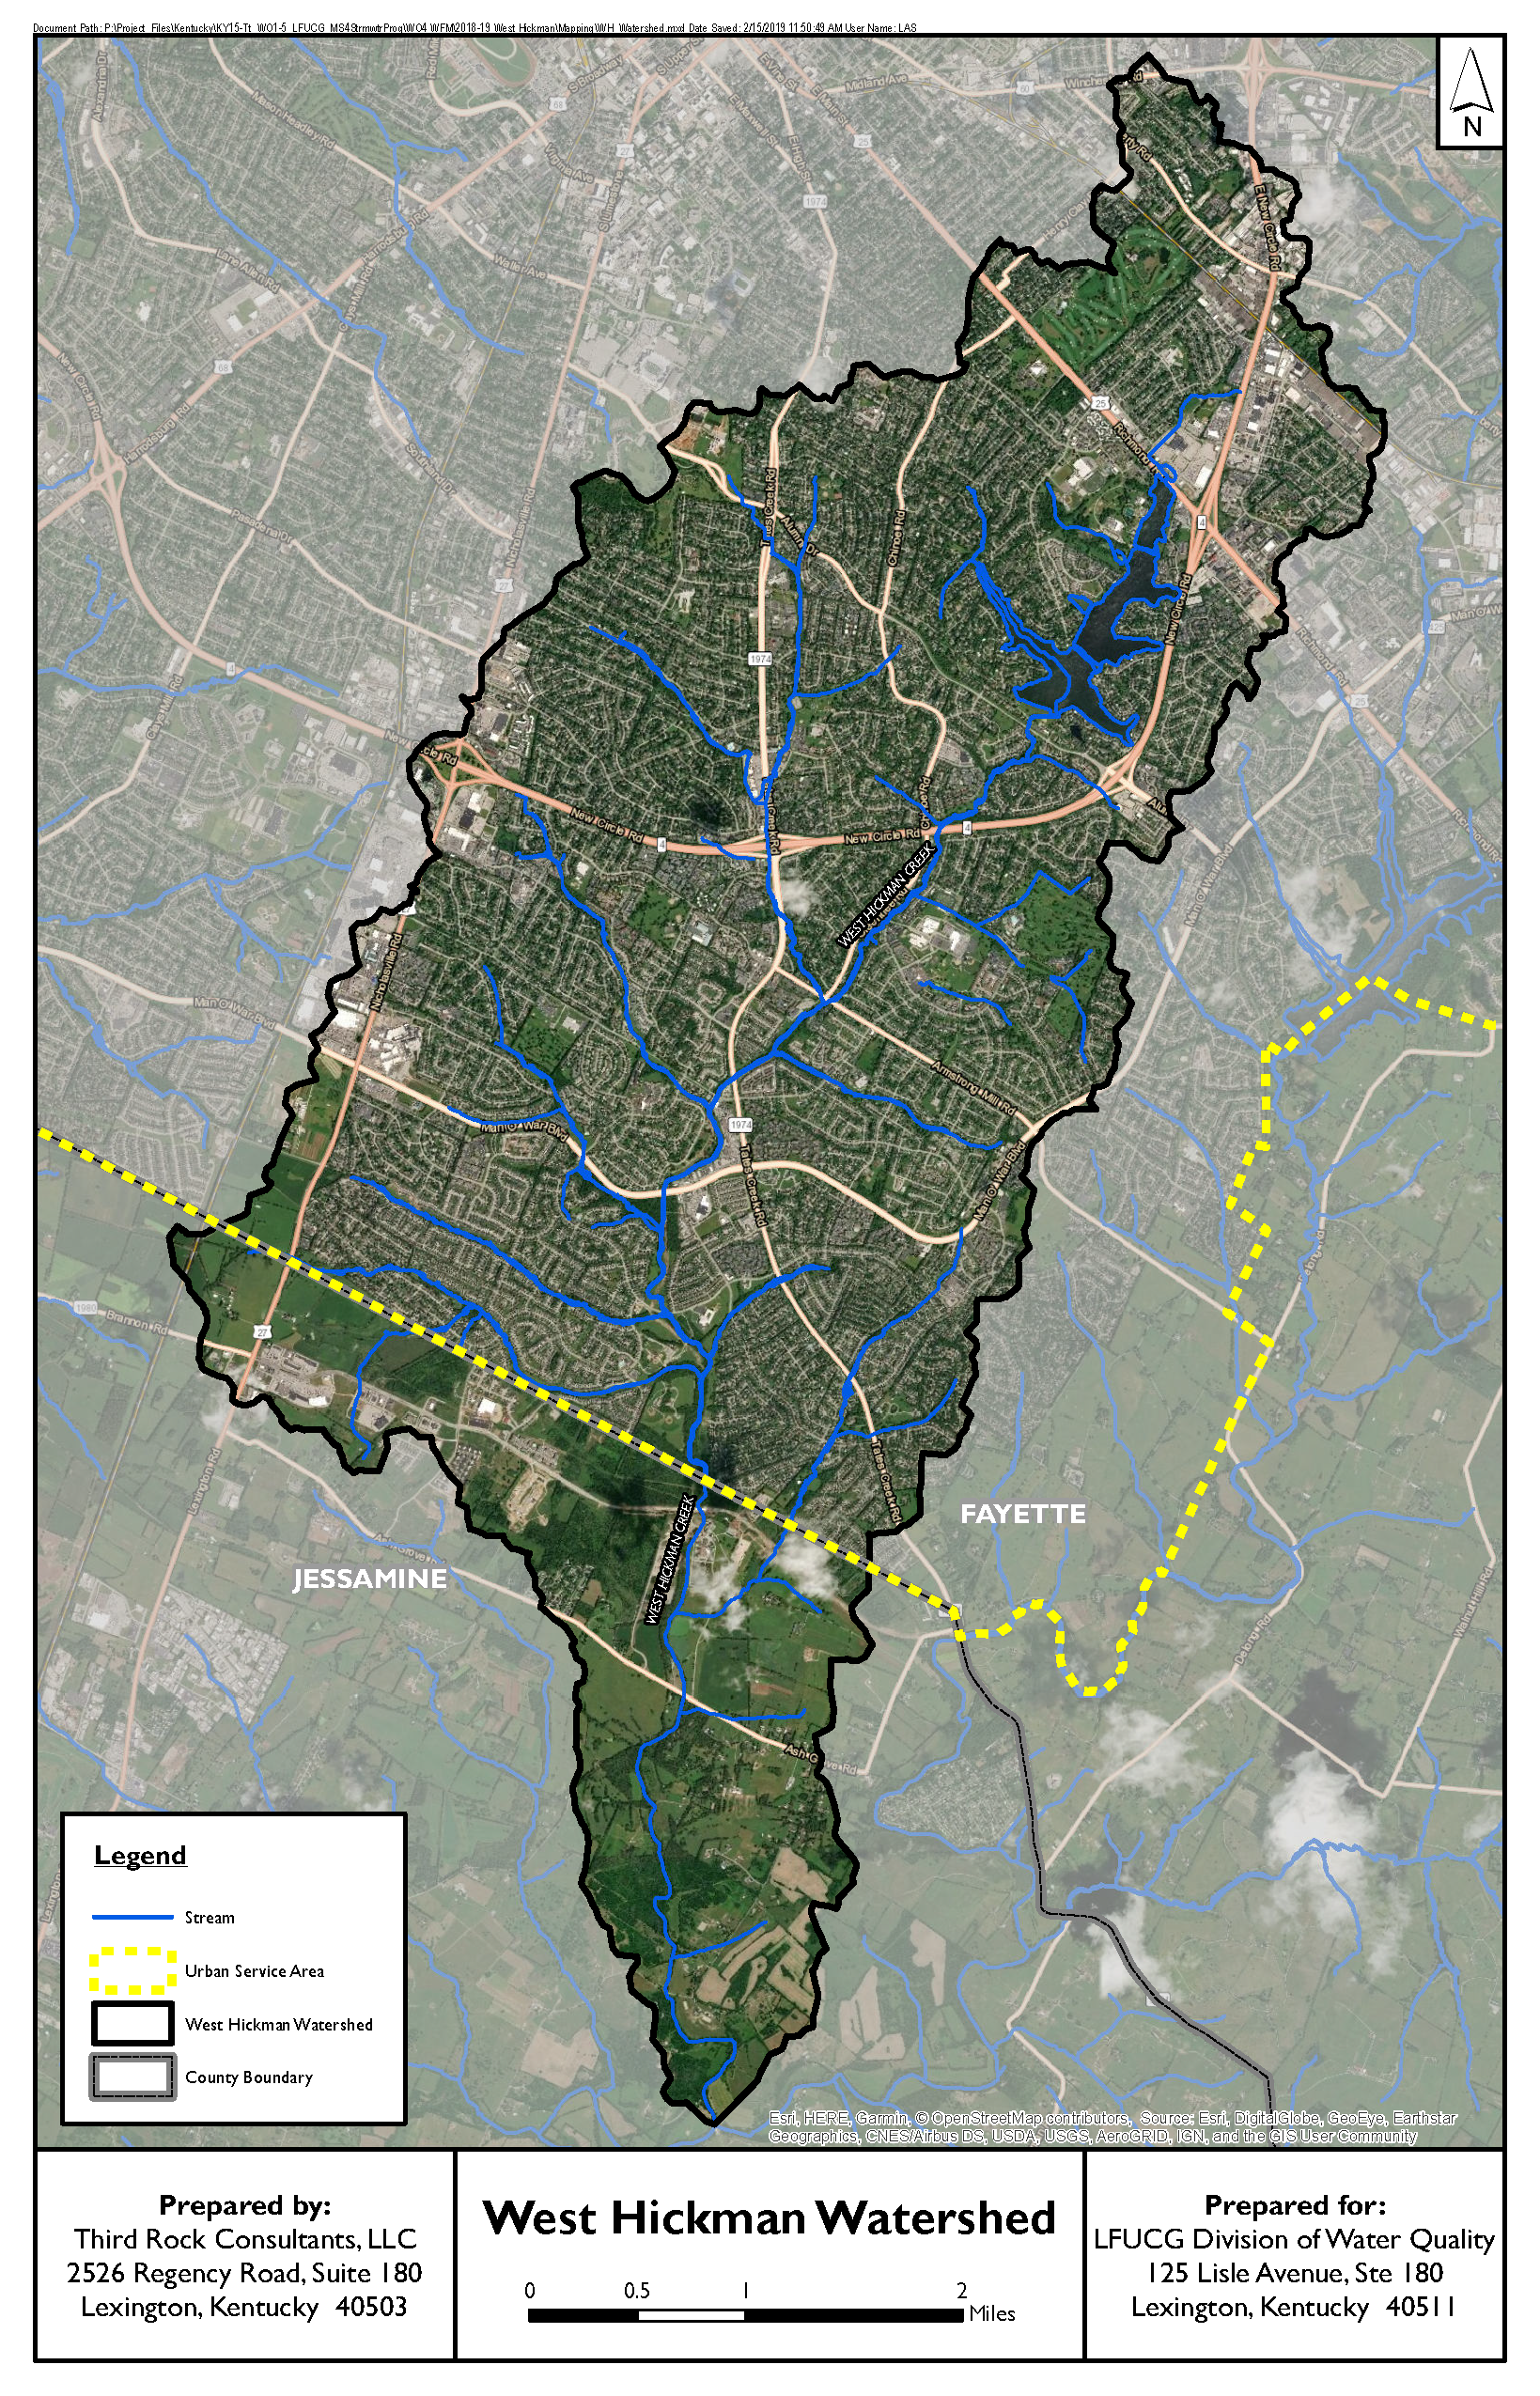 West Hickman Watershed